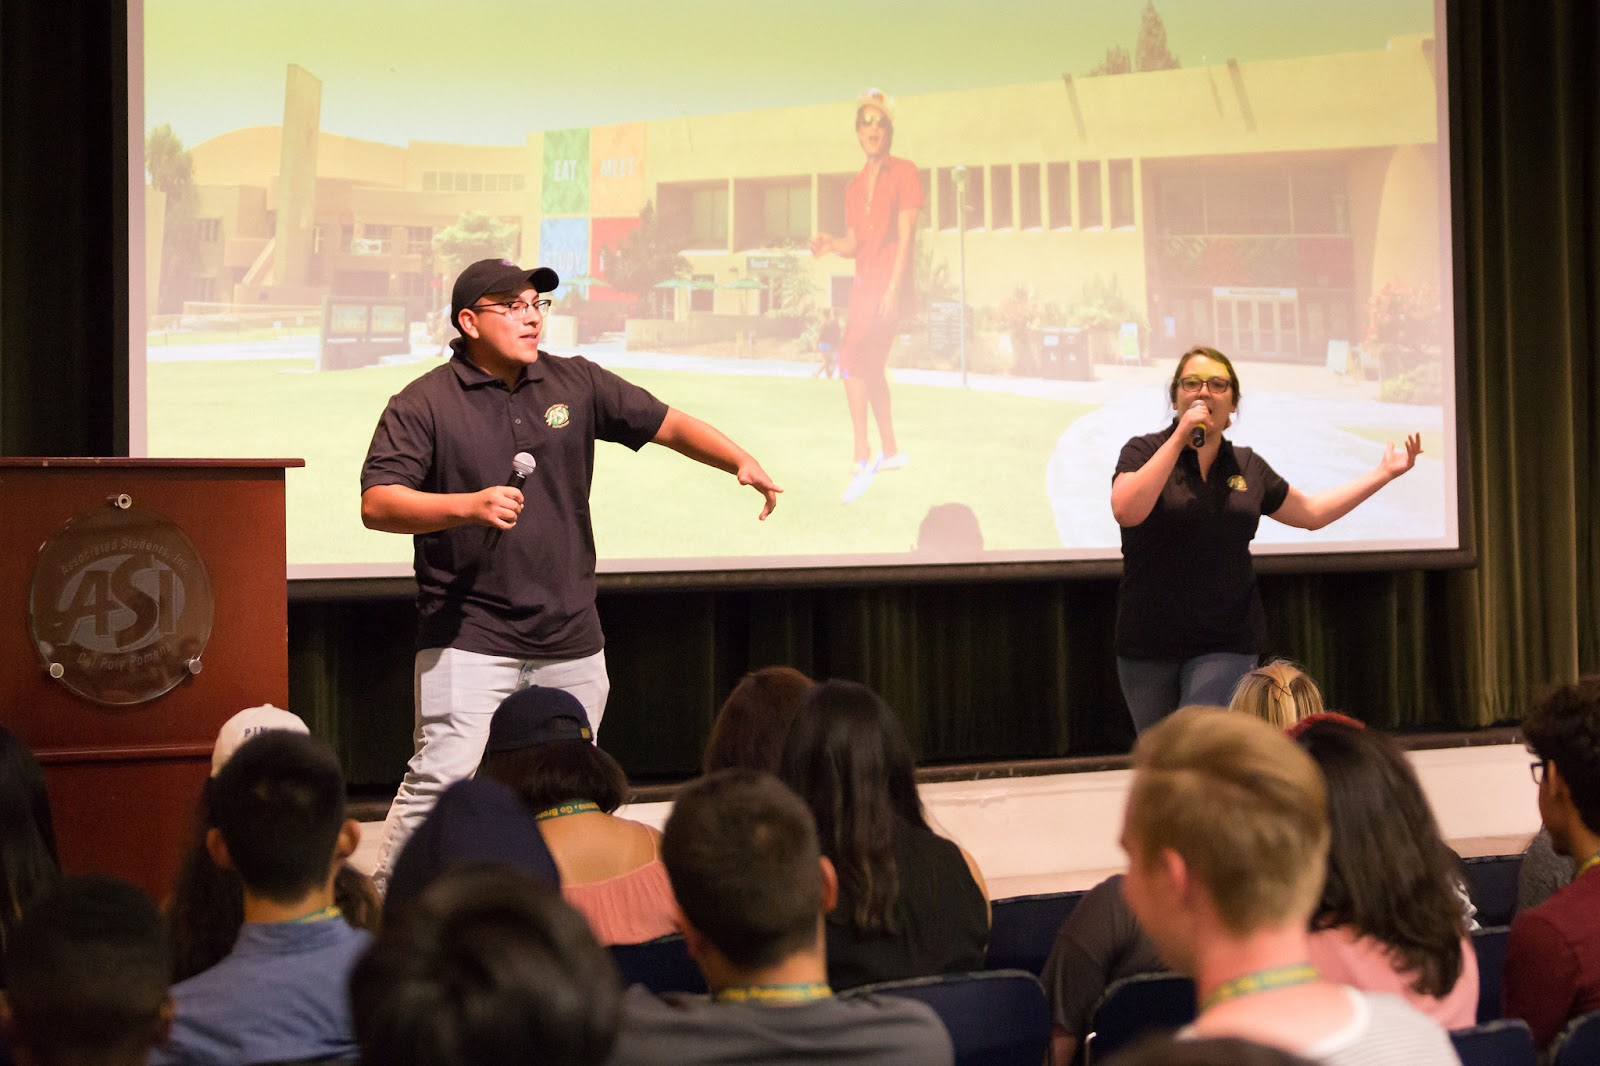 Chris Campos (left) and Sara Vasquez (right) on stage dancing during their ASI presentation to a crowd of freshman students.